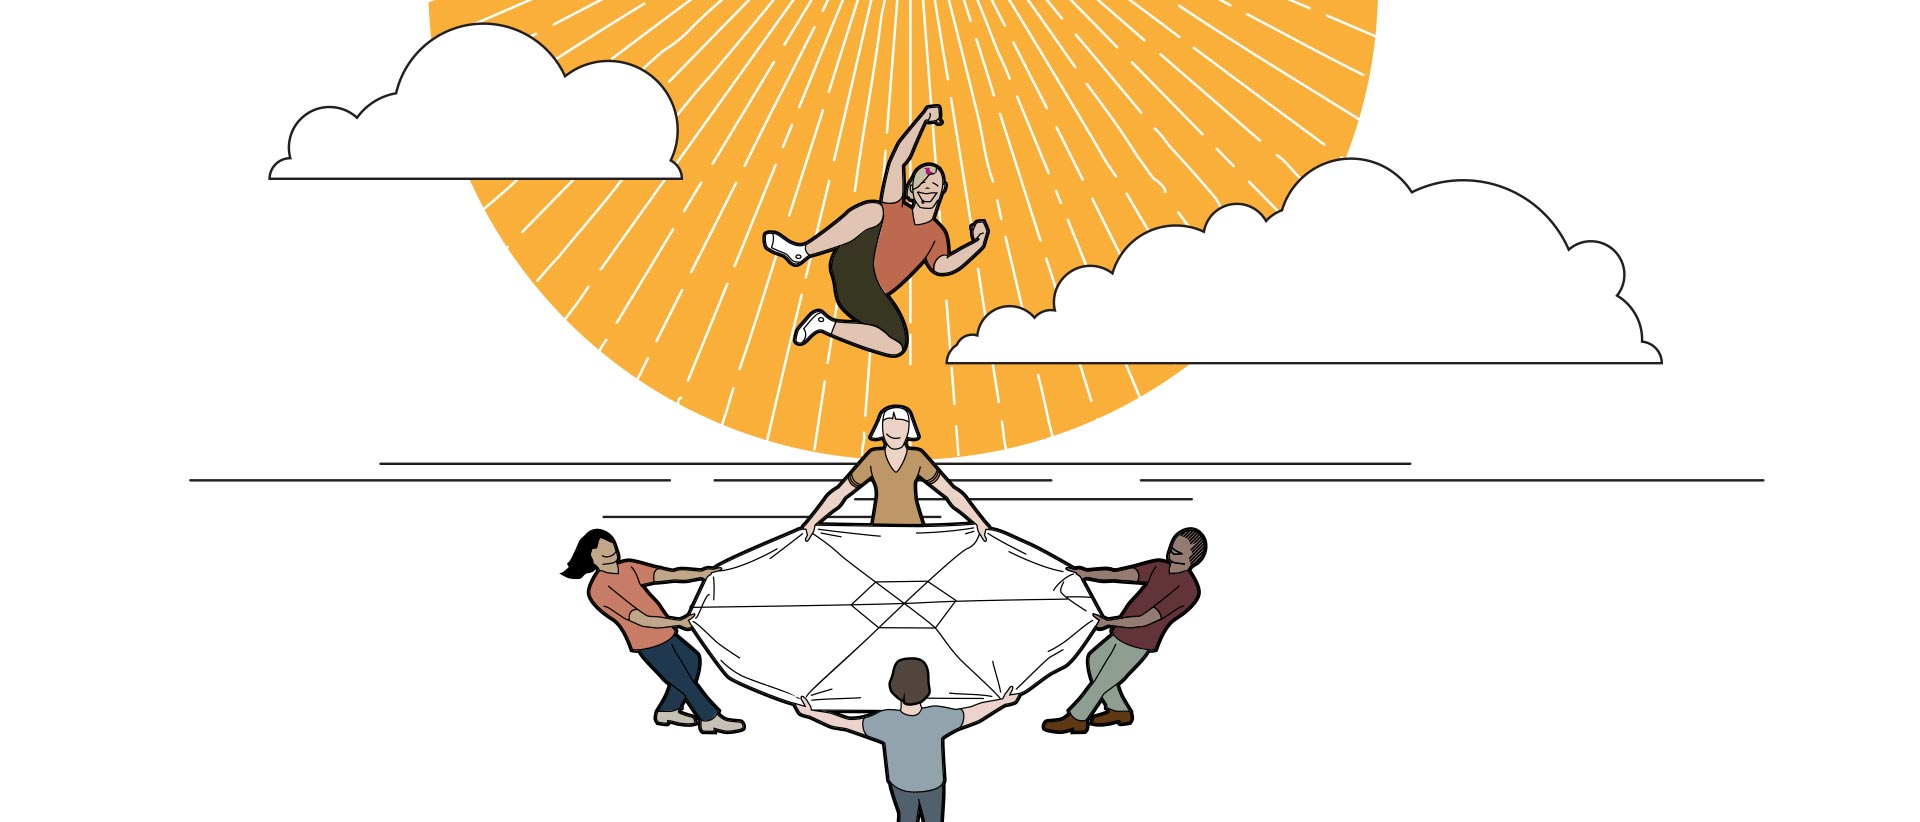 Illustration showing a group of people hold a round trampoline-like life net for a person who is bouncing on it gleefully.